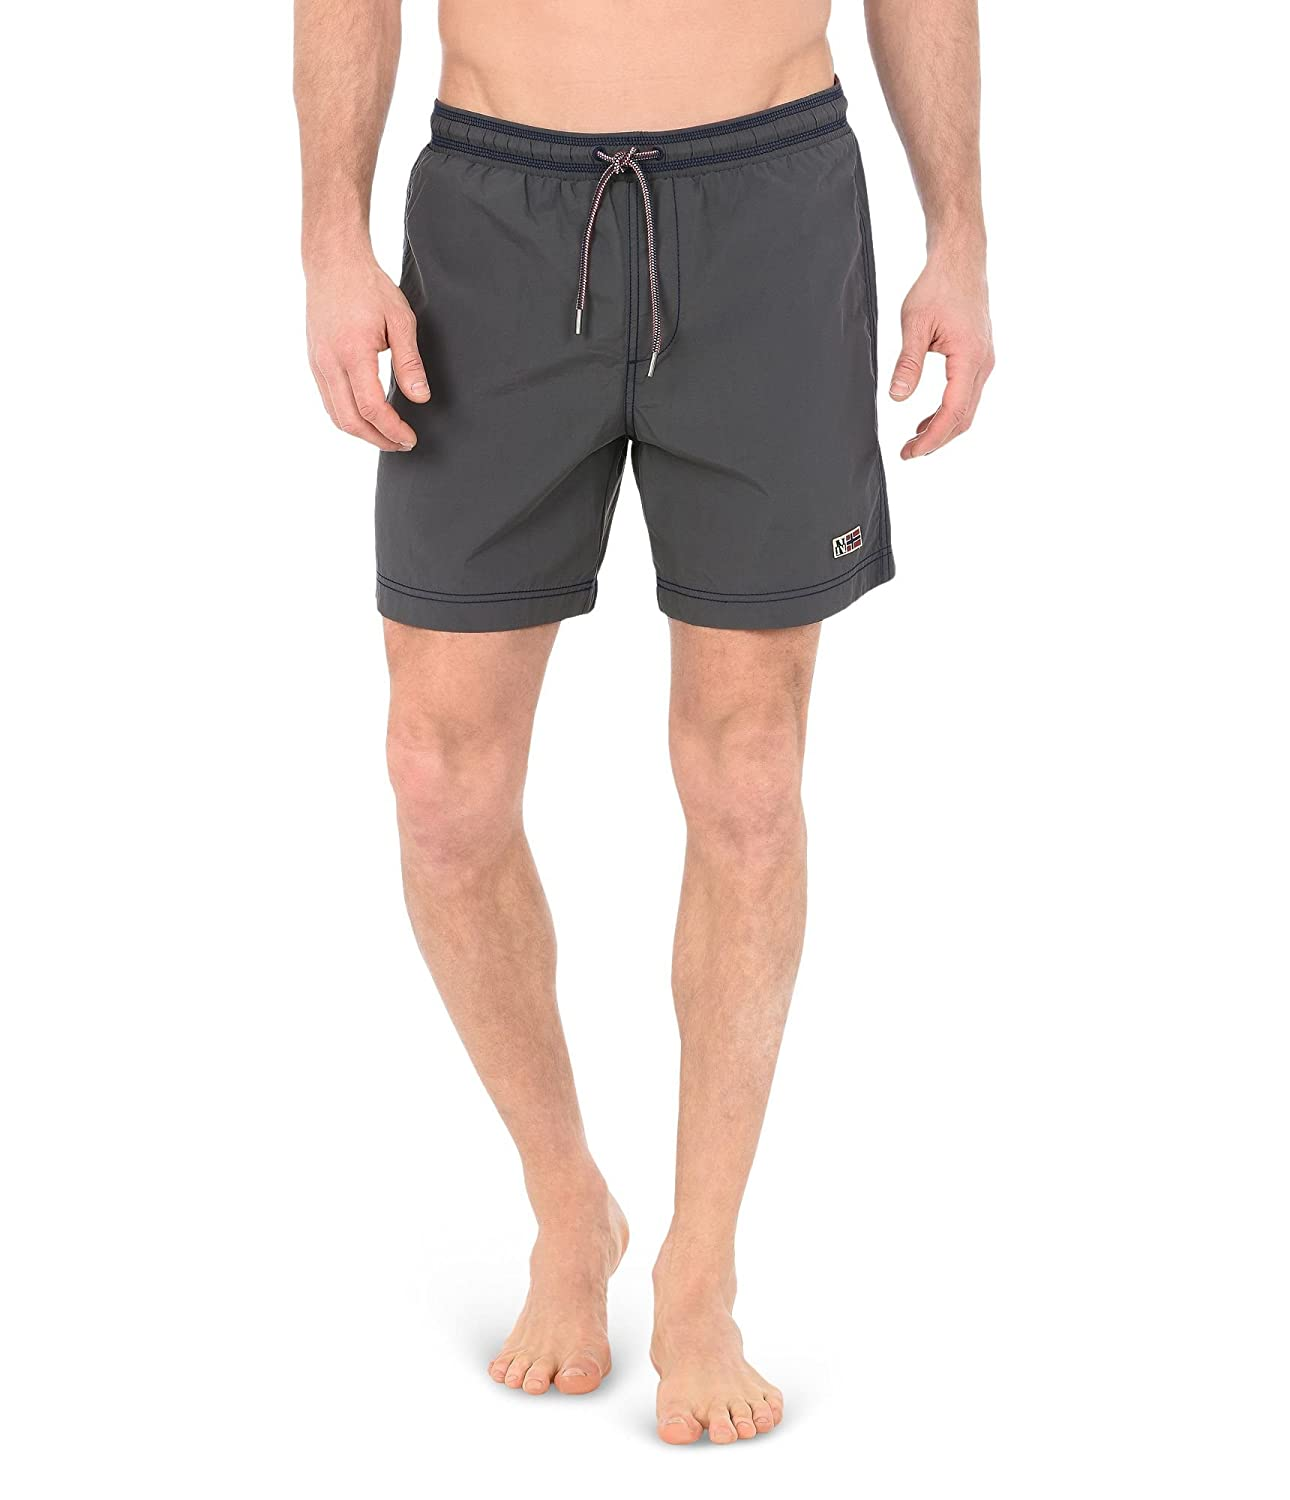 TALLA S. Napapijri Swimming Trunk IN Nylon Dark Grey, Hombre.